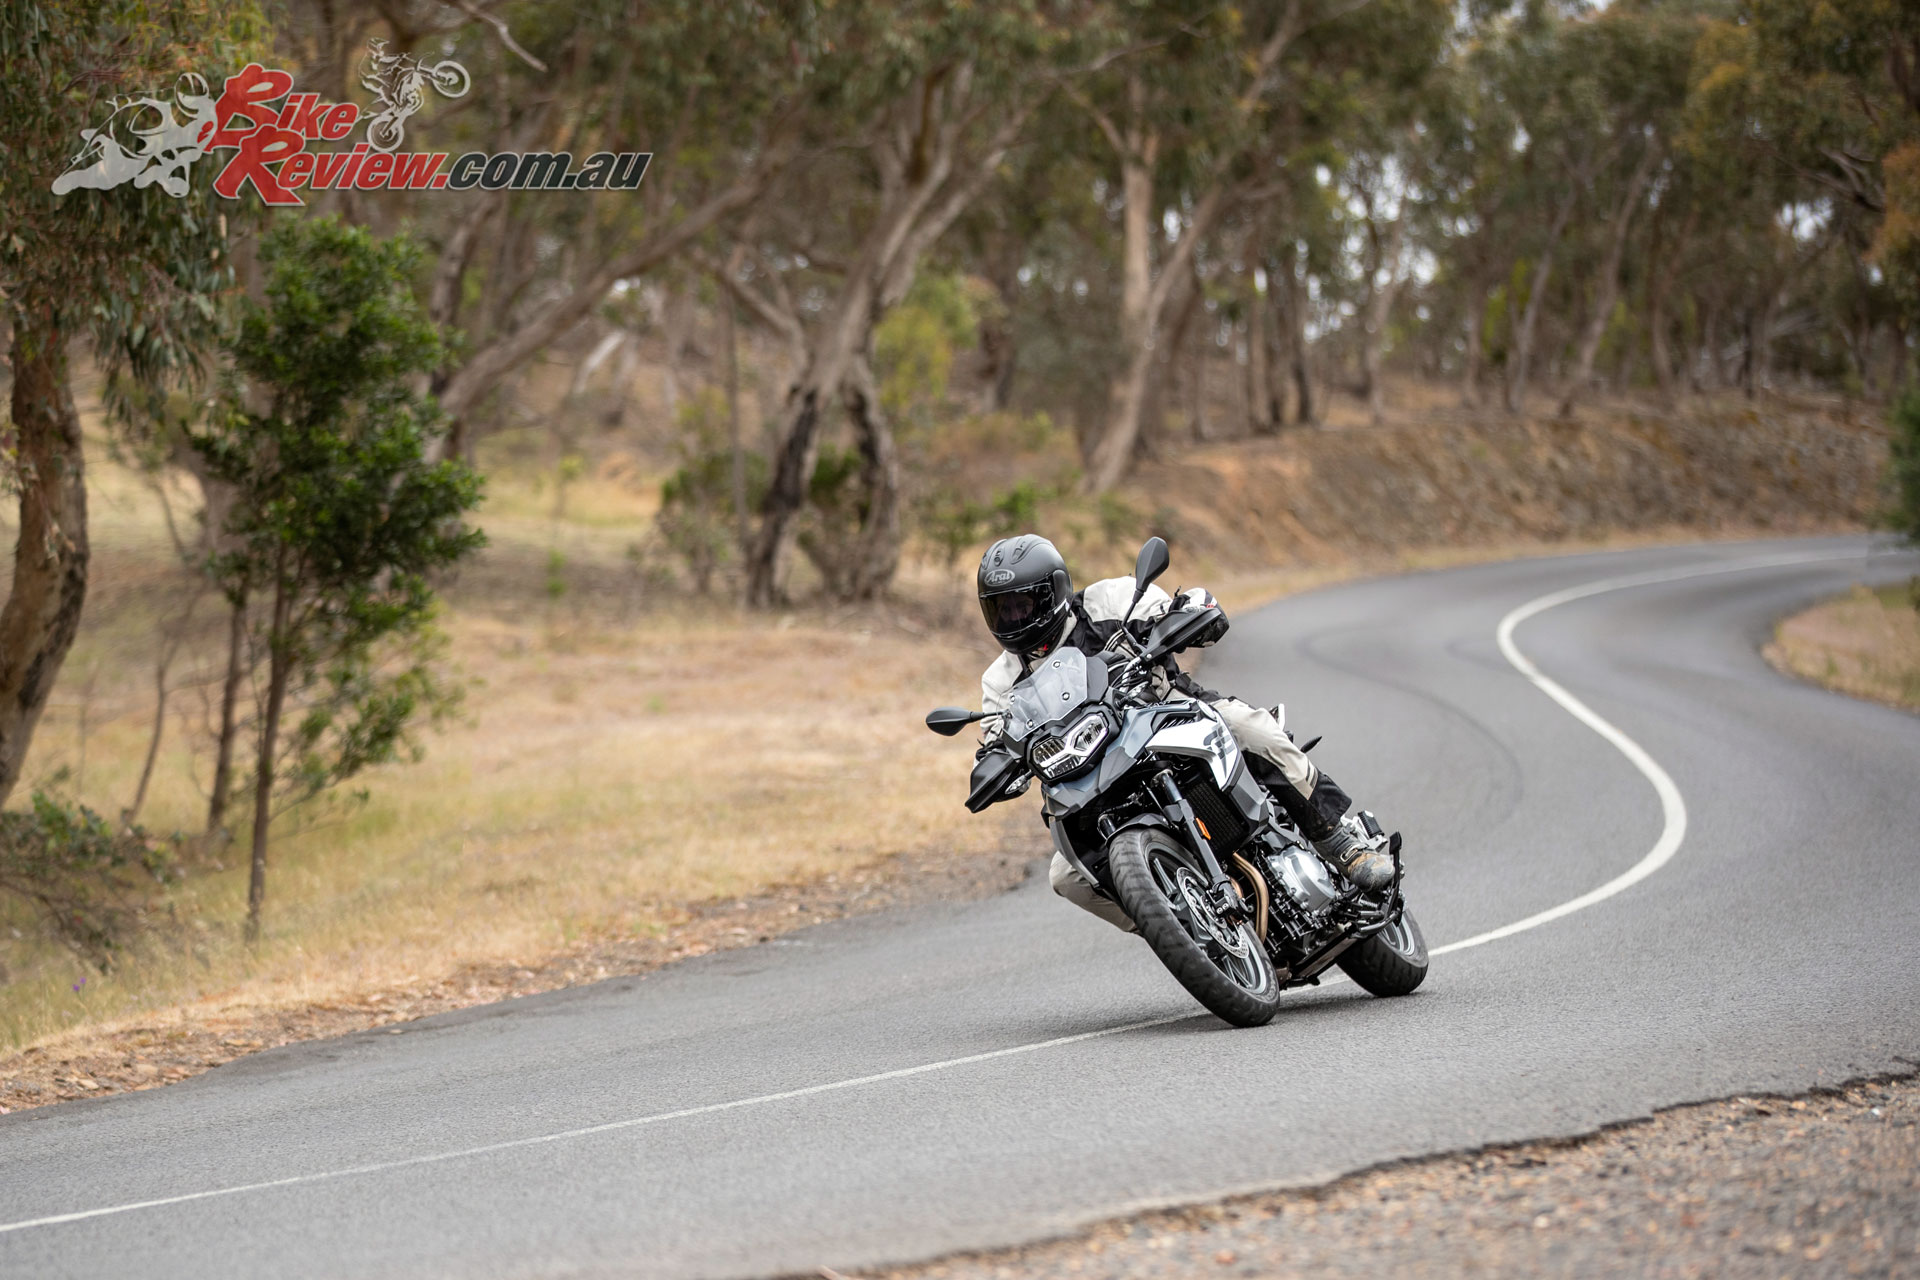 Particularly with road rubber fitted the F 750 GS is at home on flowing country roads